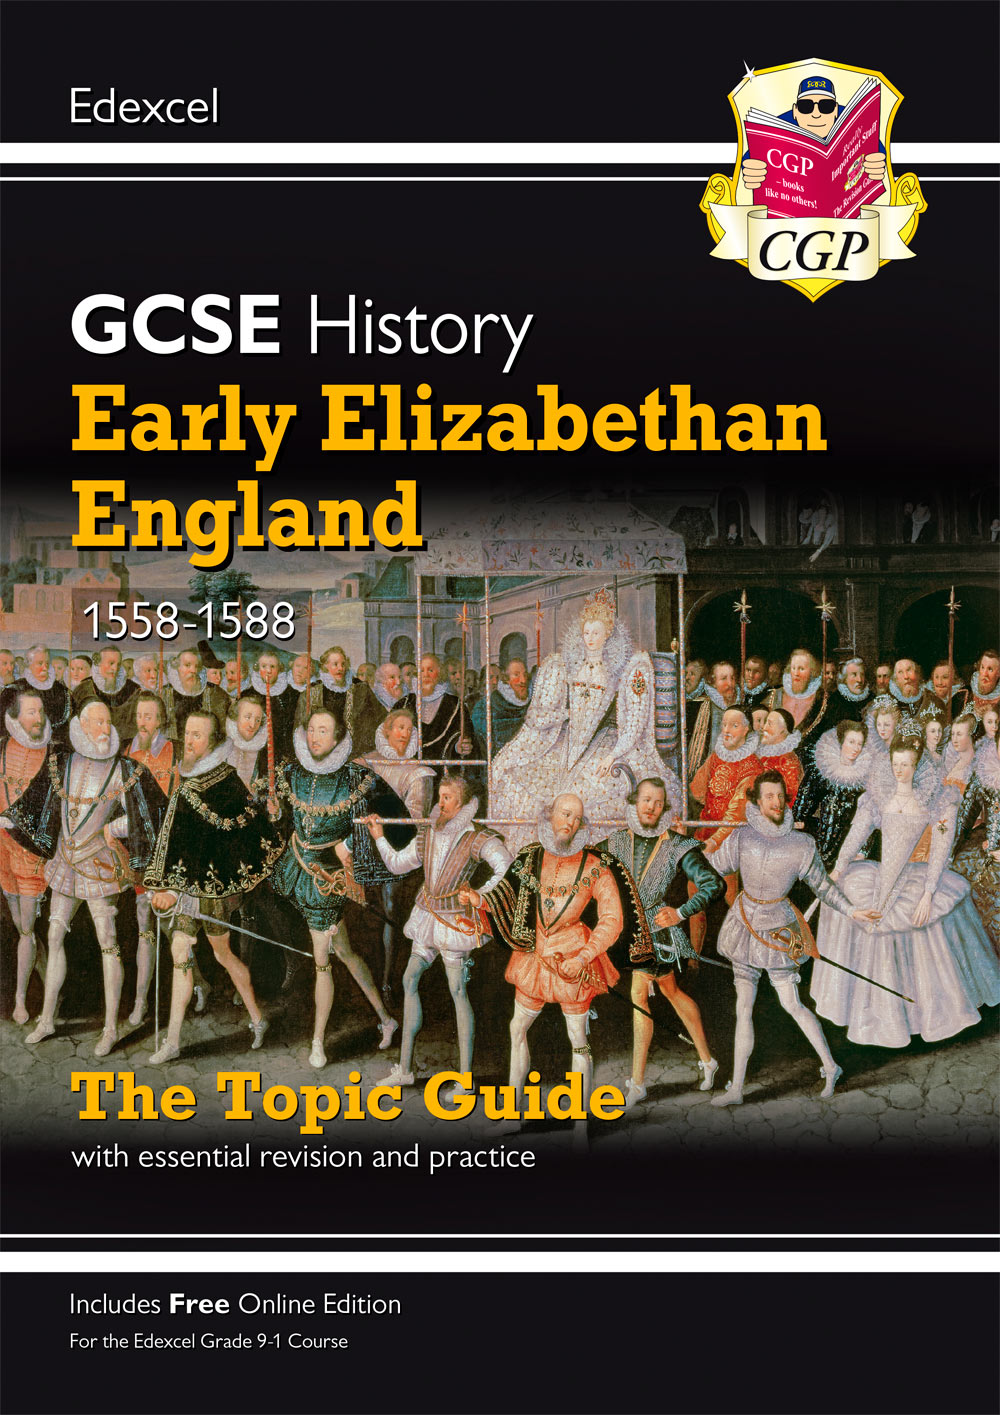 HEEAO41 - New Grade 9-1 GCSE History Edexcel Topic Guide - Early Elizabethan England, 1558-88